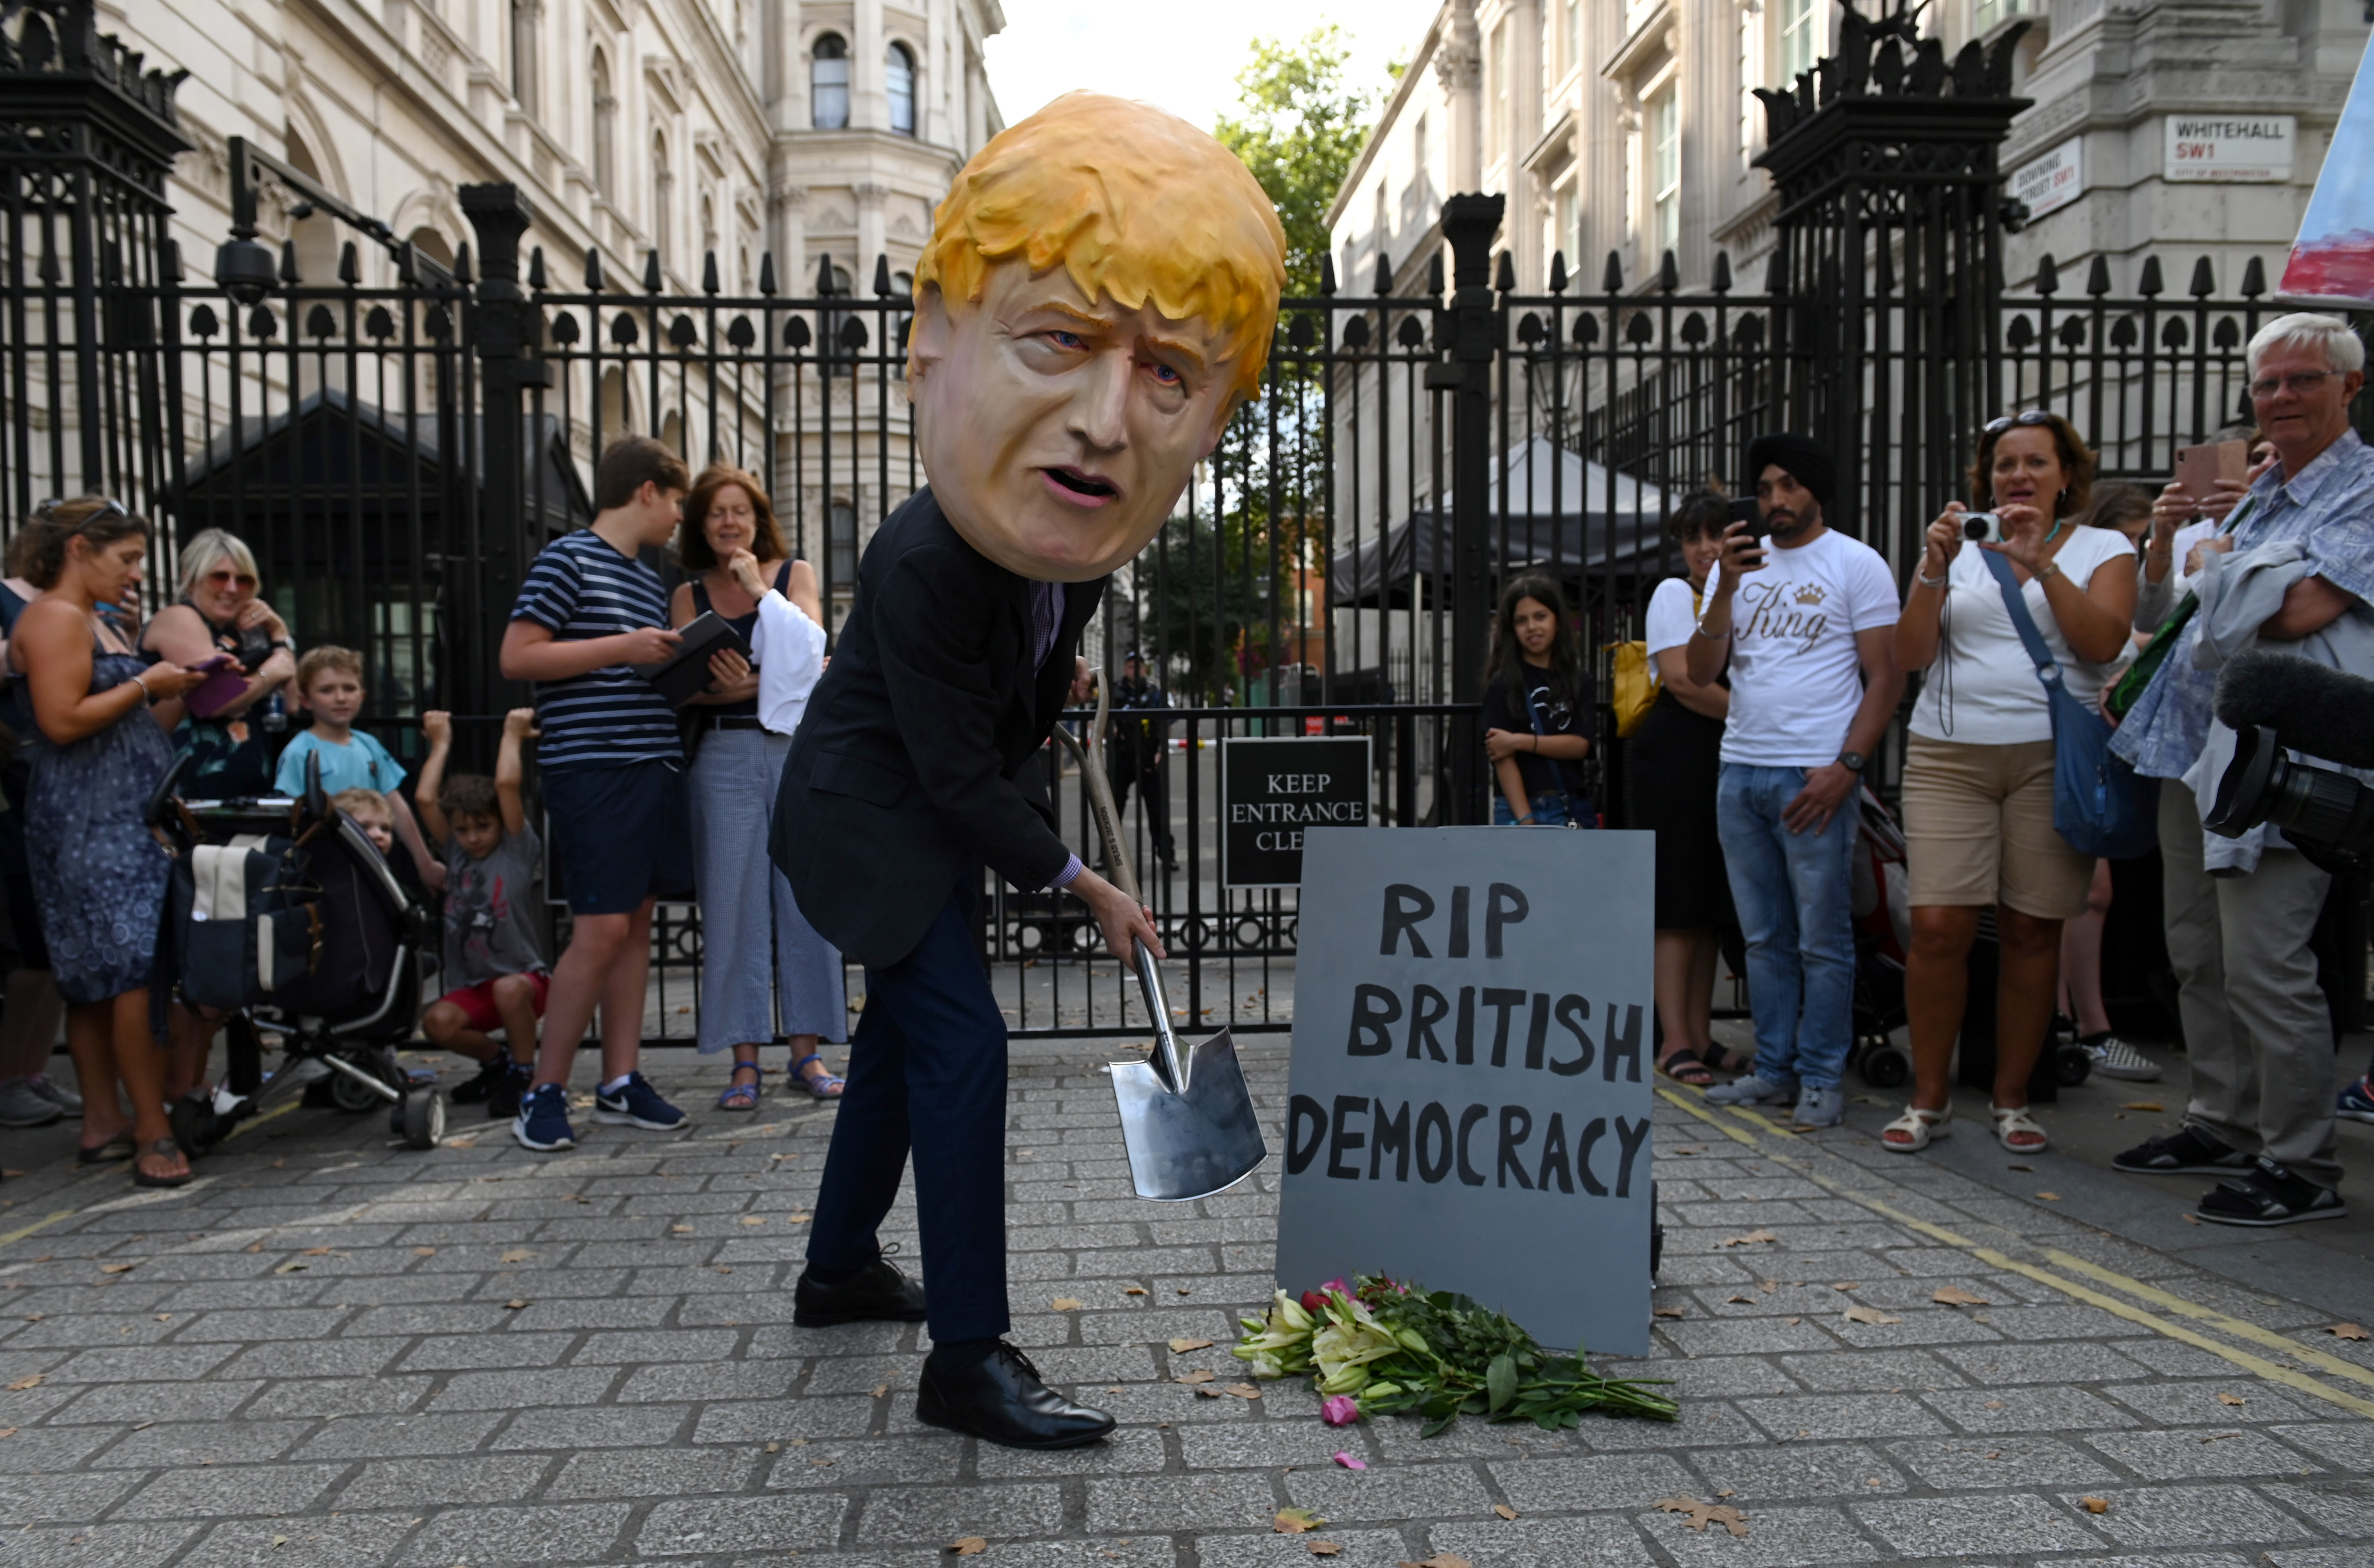 """An demonstrator, wearing a mask depicting Britain's Prime Minister Boris Johnson, and a mock gravestone inscribed with the words """"RIP British Democracy"""" protests outside the gates to Downing Street in central London on August 28, 2019. - British Prime Minister Boris Johnson announced Wednesday that the suspension of parliament would be extended until October 14 -- just two weeks before the UK is set to leave the EU -- enraging anti-Brexit MPs. MPs will return to London later than in recent years, giving pro-EU lawmakers less time than expected to thwart Johnson's Brexit plans before Britain is due to leave the European Union on October 31. (Photo by DANIEL LEAL-OLIVAS / AFP)        (Photo credit should read DANIEL LEAL-OLIVAS/AFP/Getty Images)"""